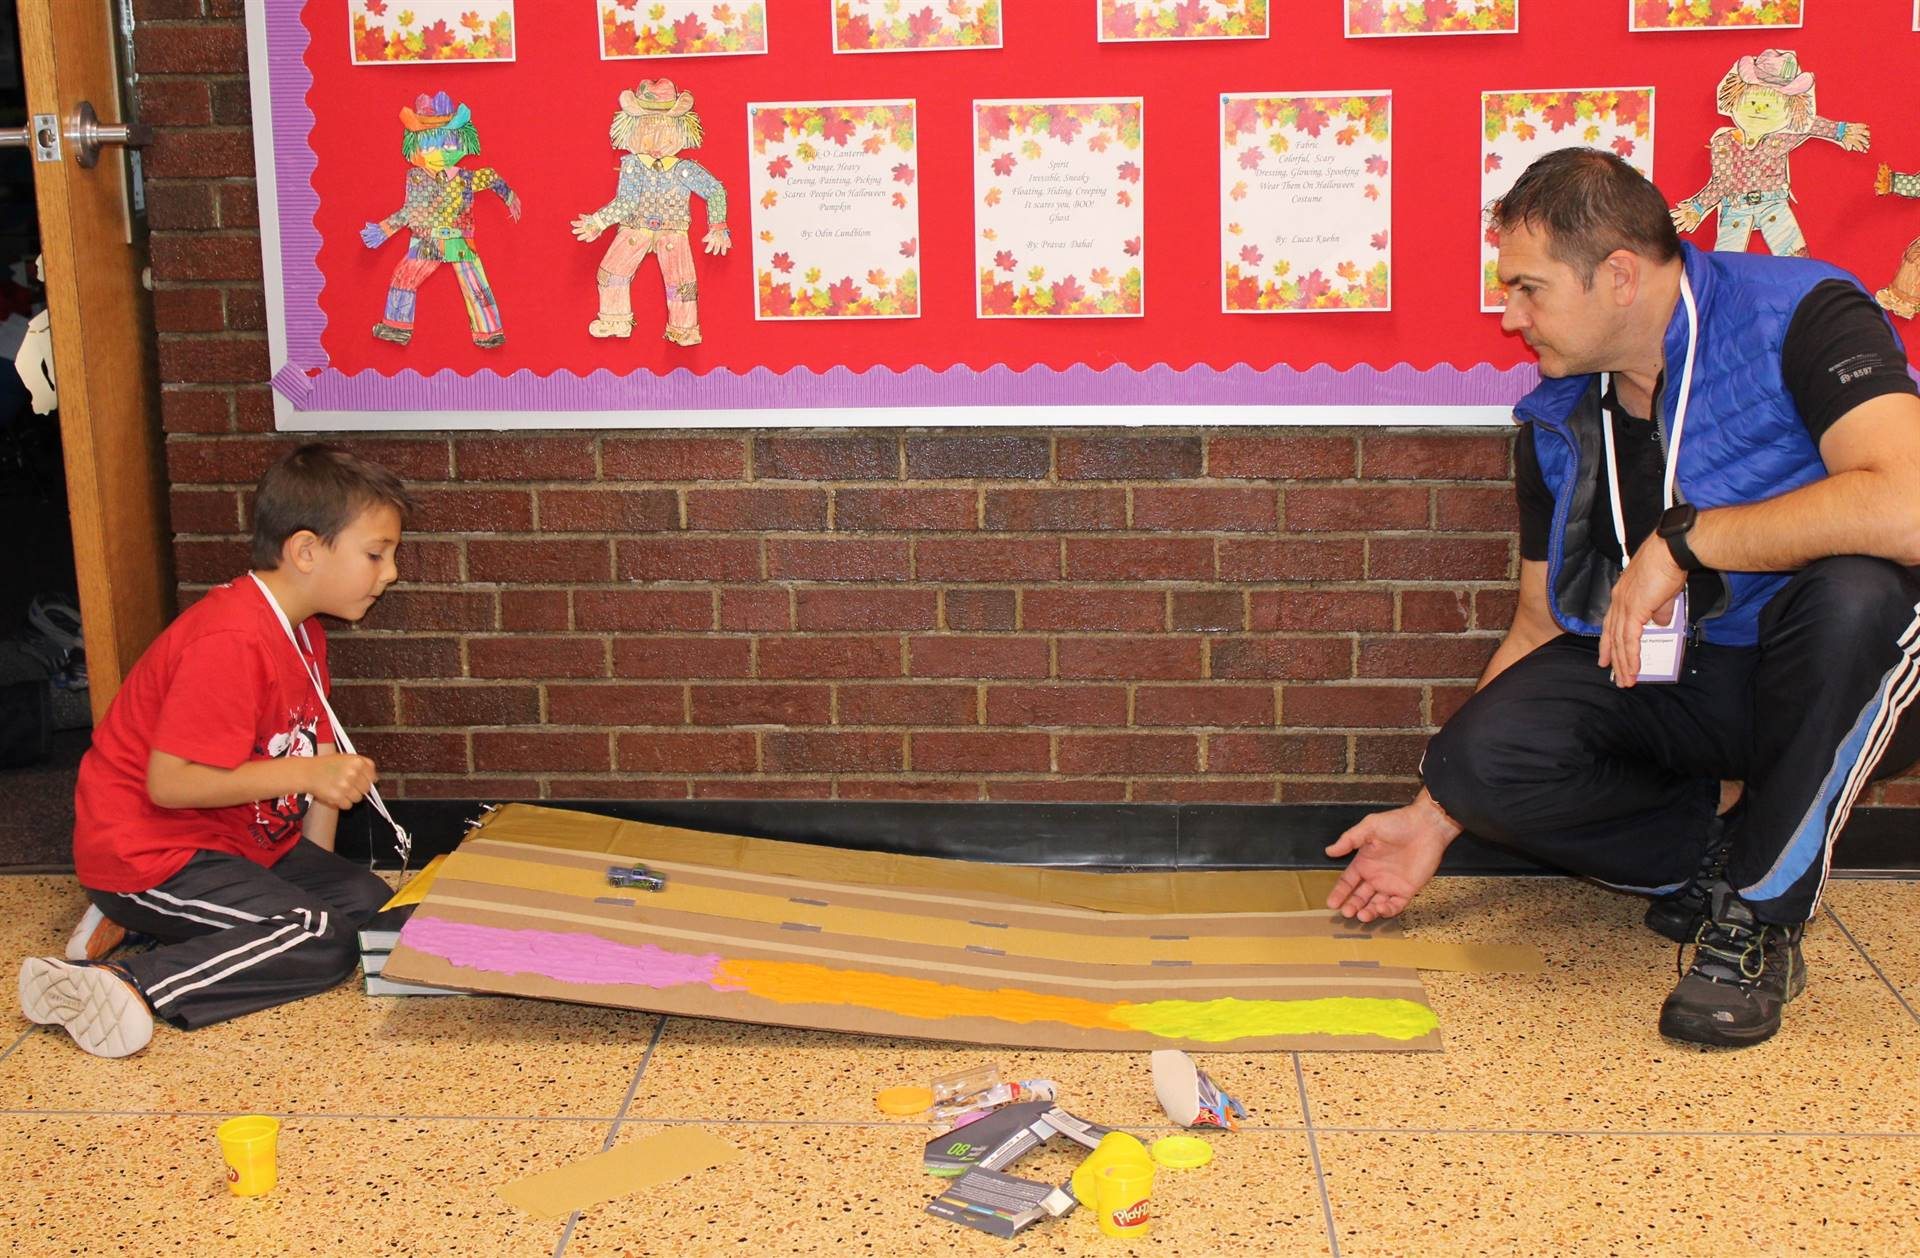 Families have fun at the Family Creative Learning Program